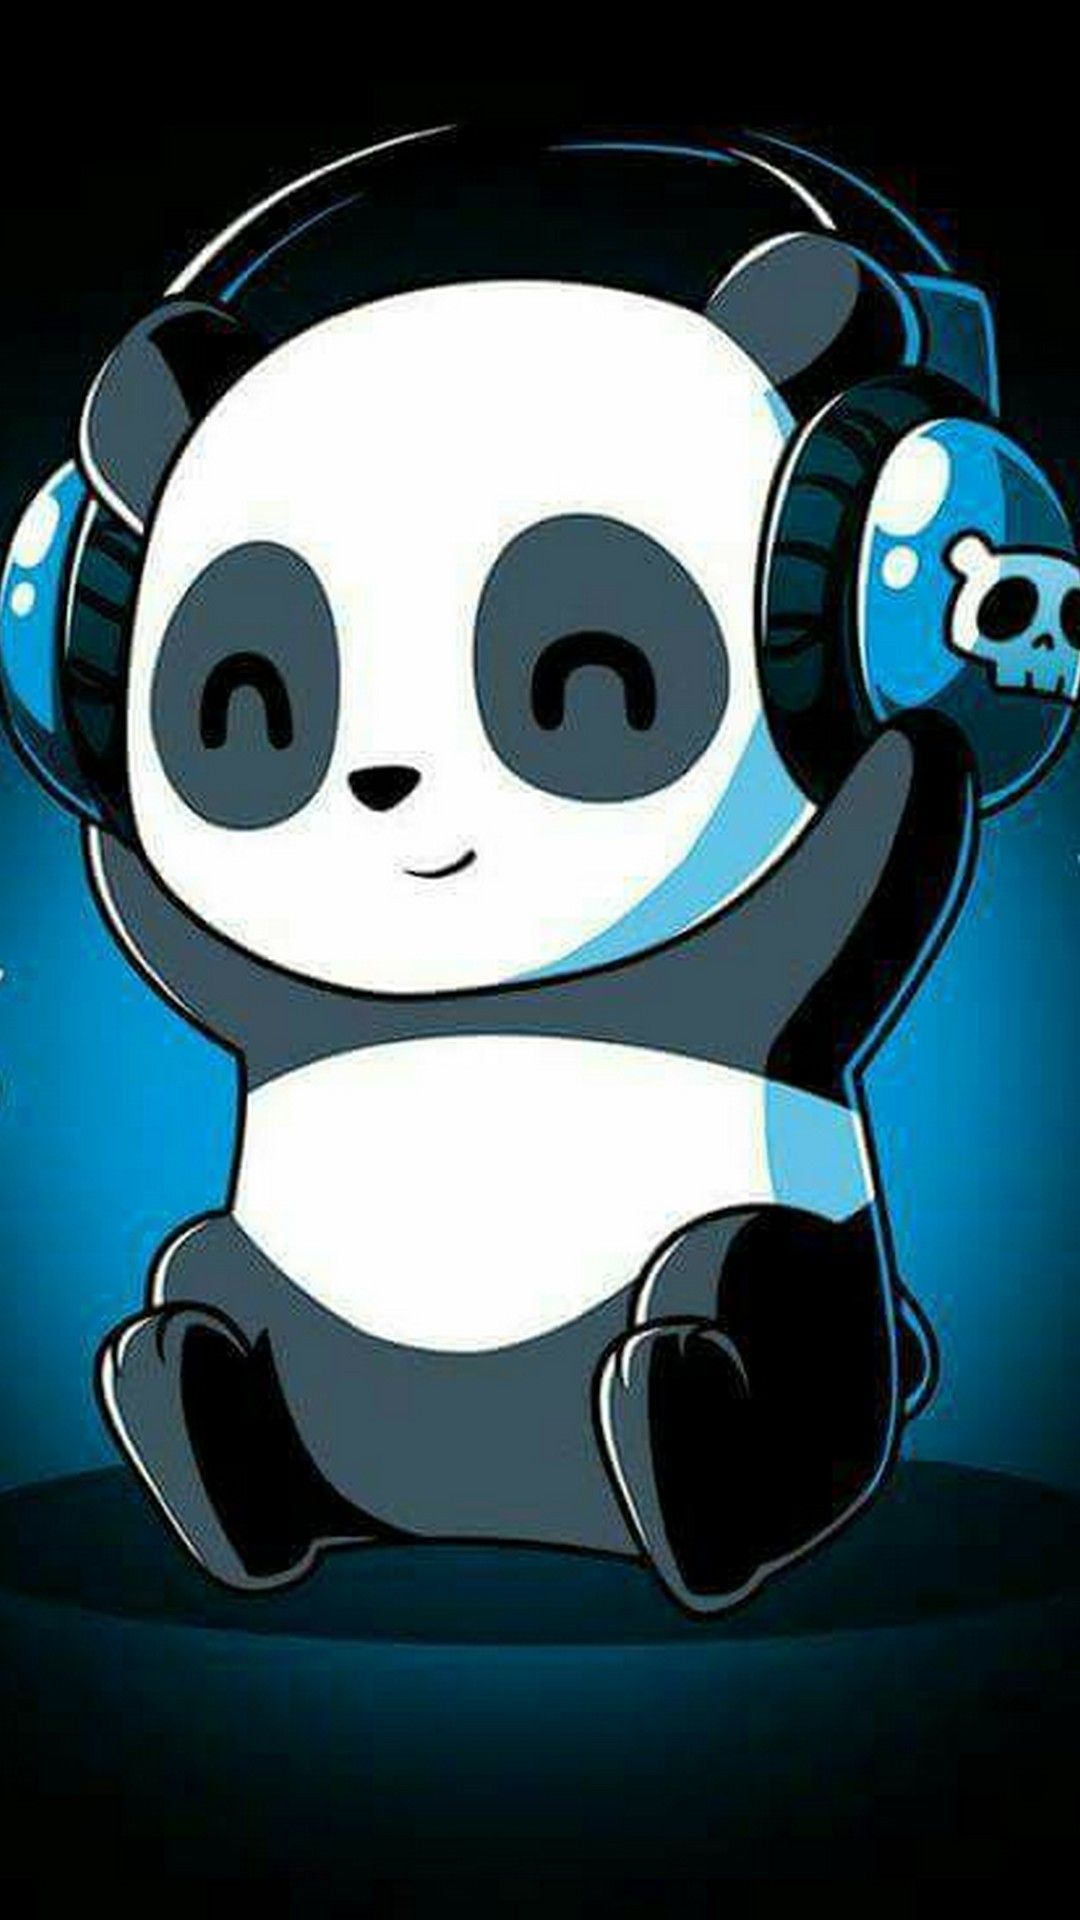 Baby Cartoon Cute Wallpaper Panda Images